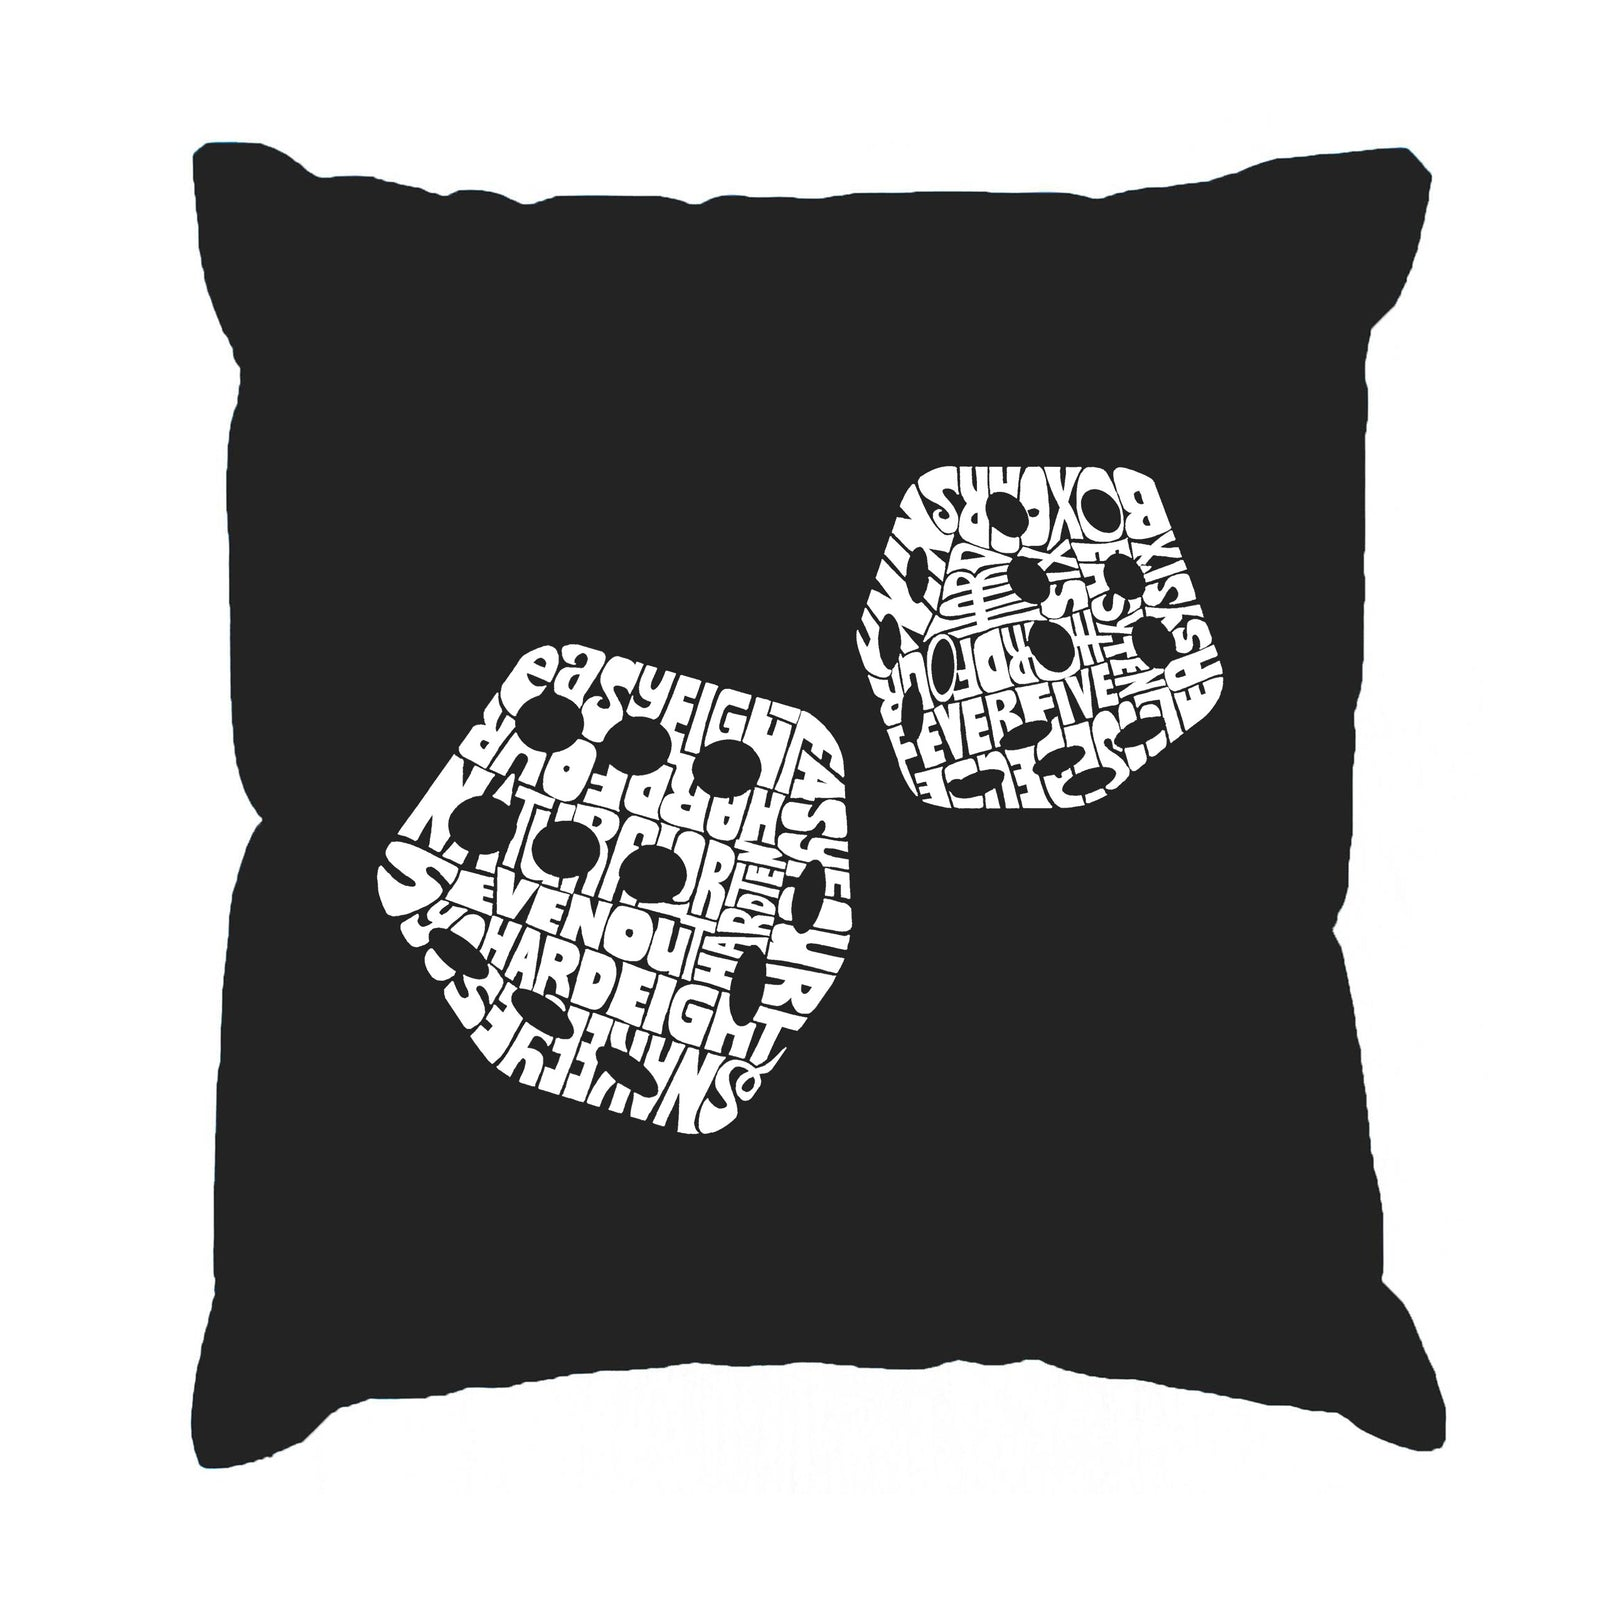 Throw Pillow Cover - DIFFERENT ROLLS THROWN IN THE GAME OF CRAPS